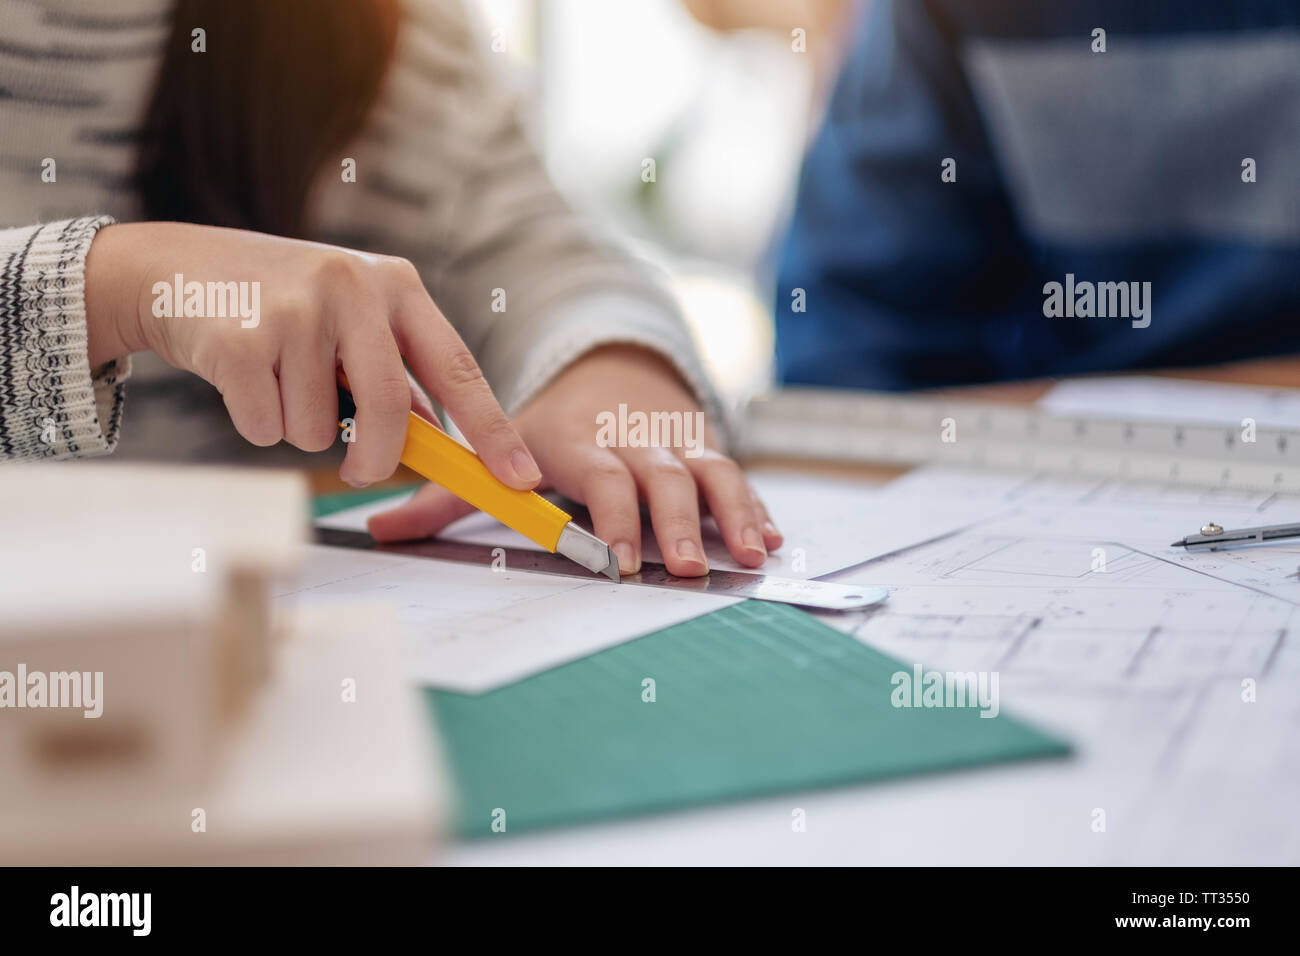 An architect working and cutting papers in office - Stock Image